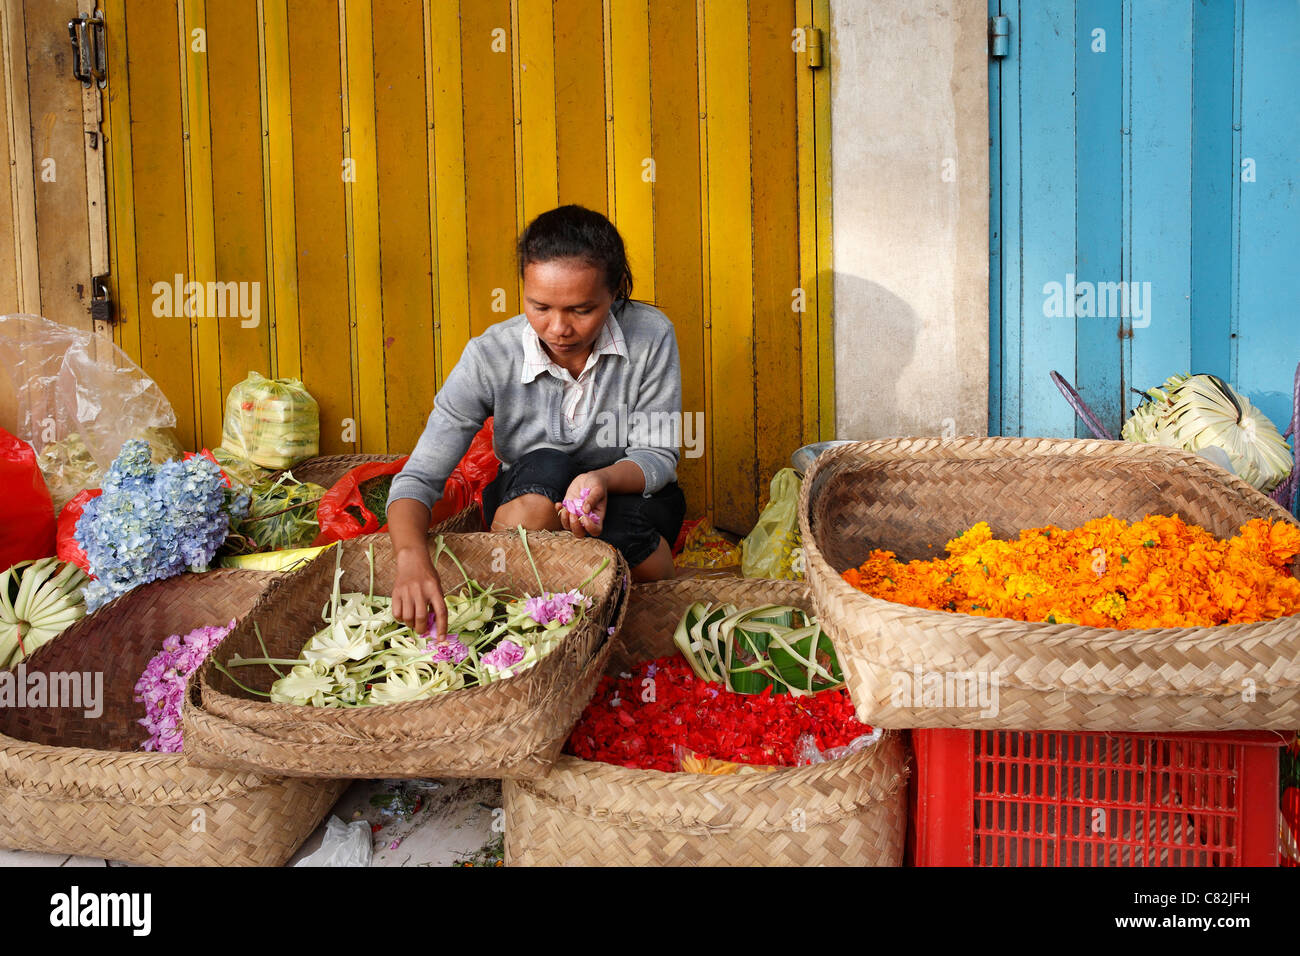 Balinese Woman making offerings to sell at the Ubud Traditional Markets. Ubud, Bali, Indonesia - Stock Image